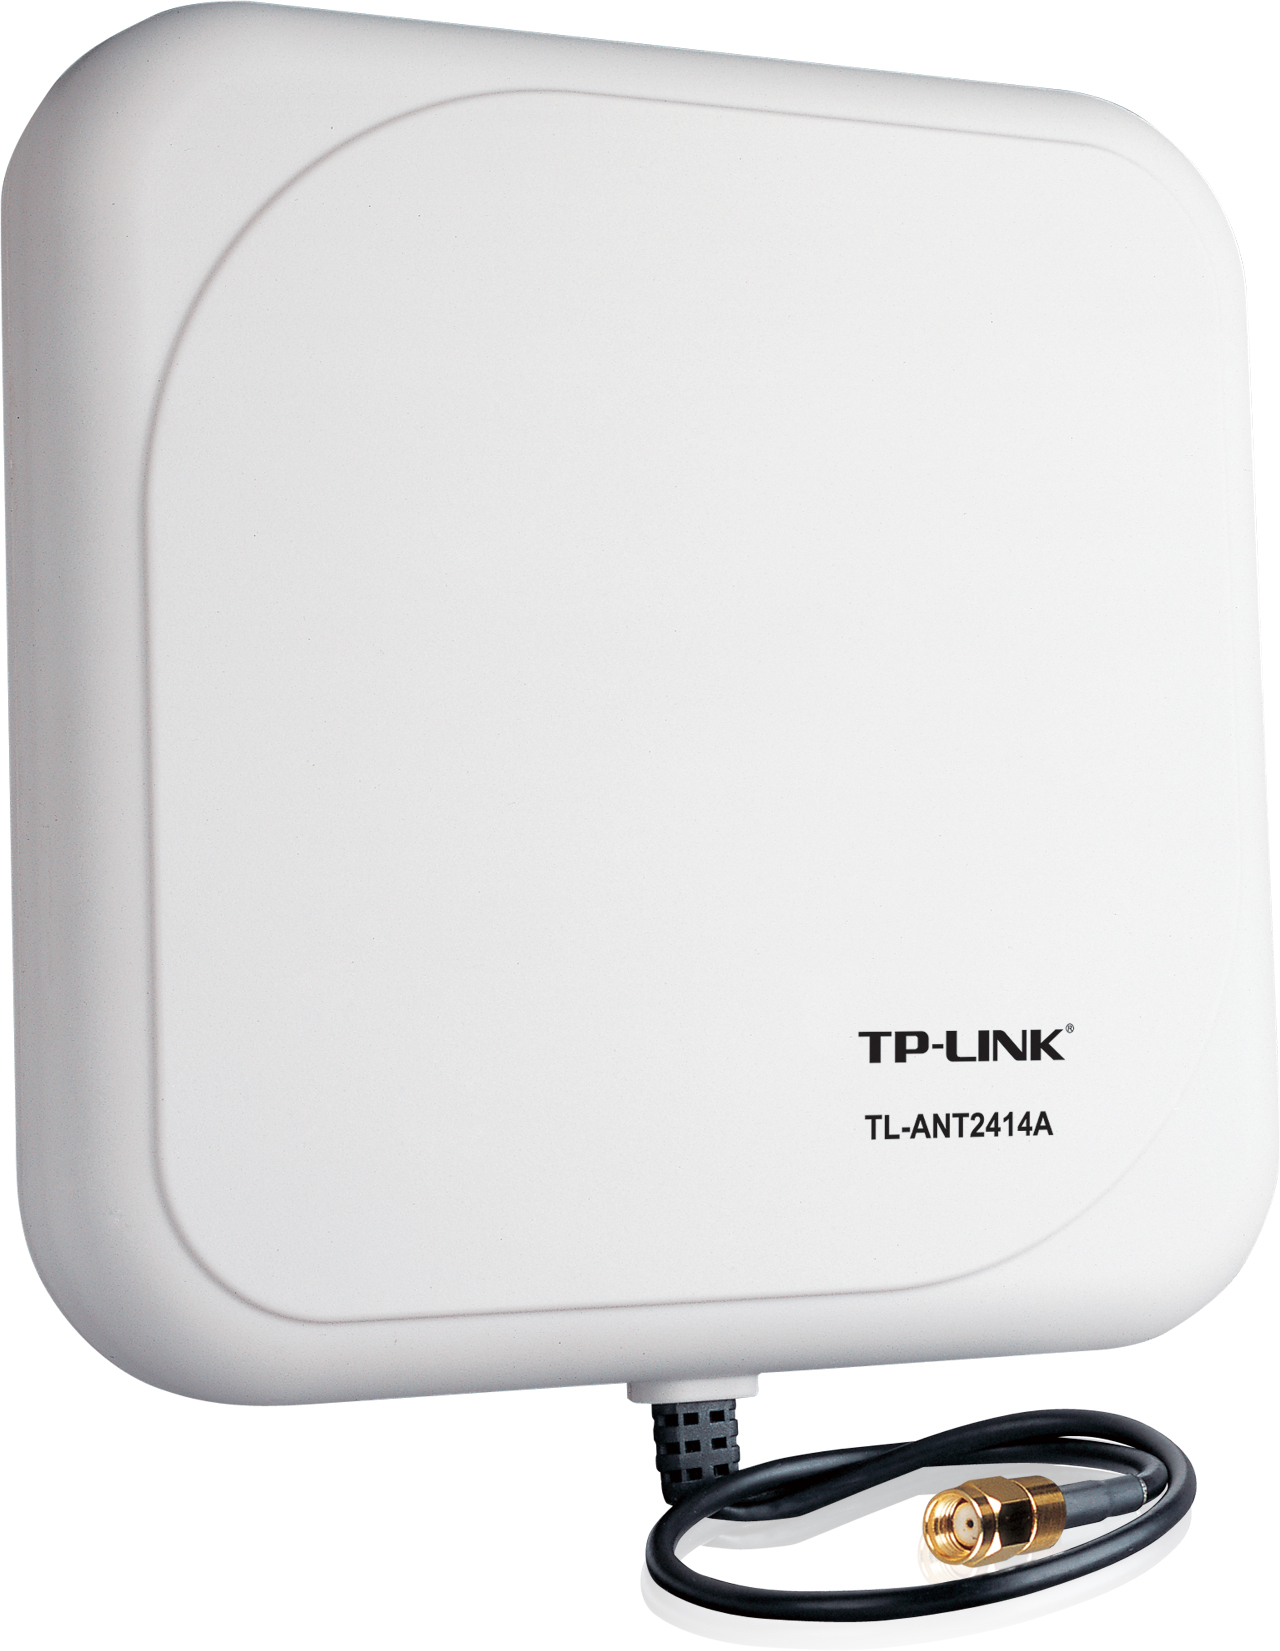 2 4ghz 14dbi outdoor directional antenna tl ant2414a welcome to tp link. Black Bedroom Furniture Sets. Home Design Ideas